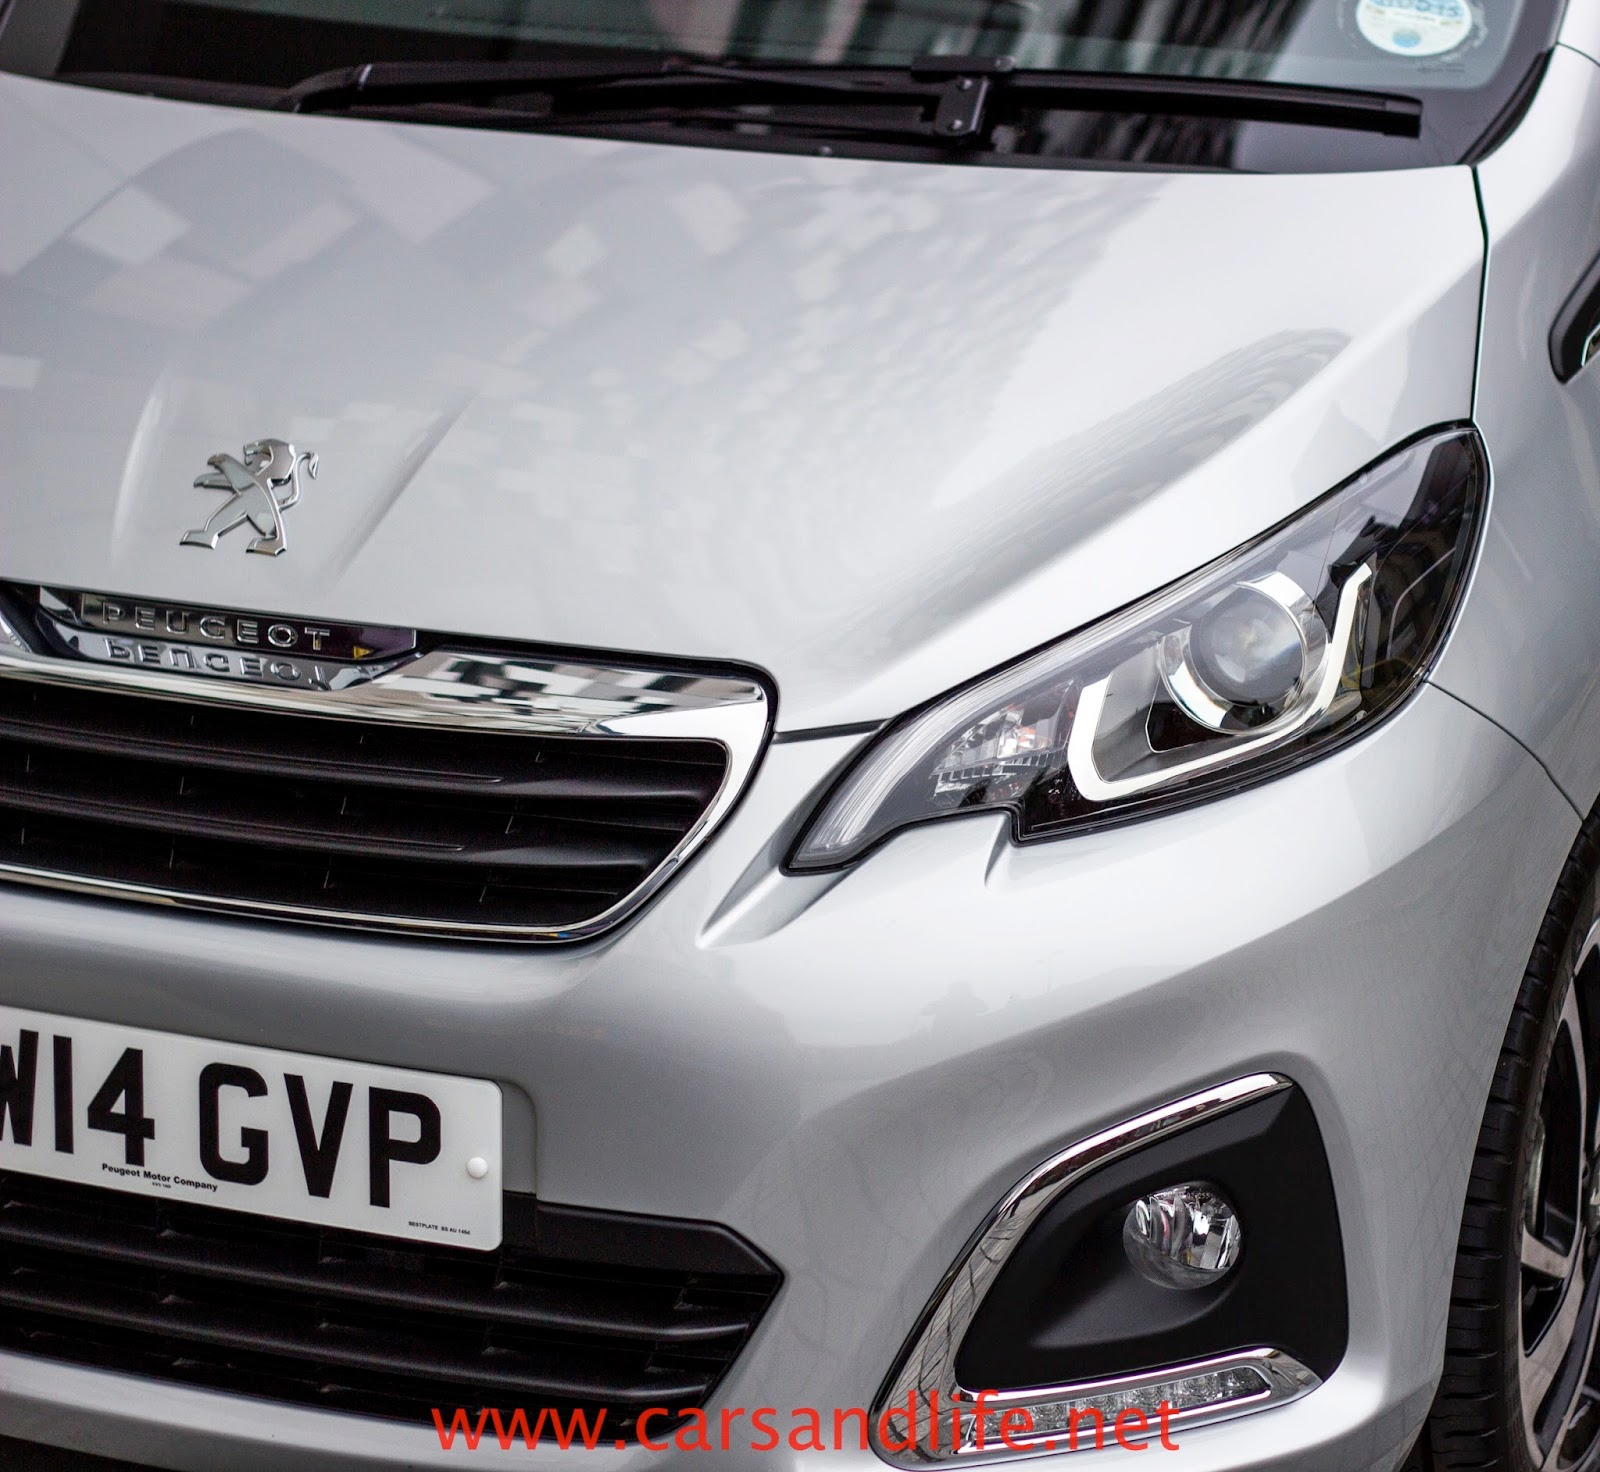 Why You Should Buy A Peugeot 108 Cars Amp Life Cars